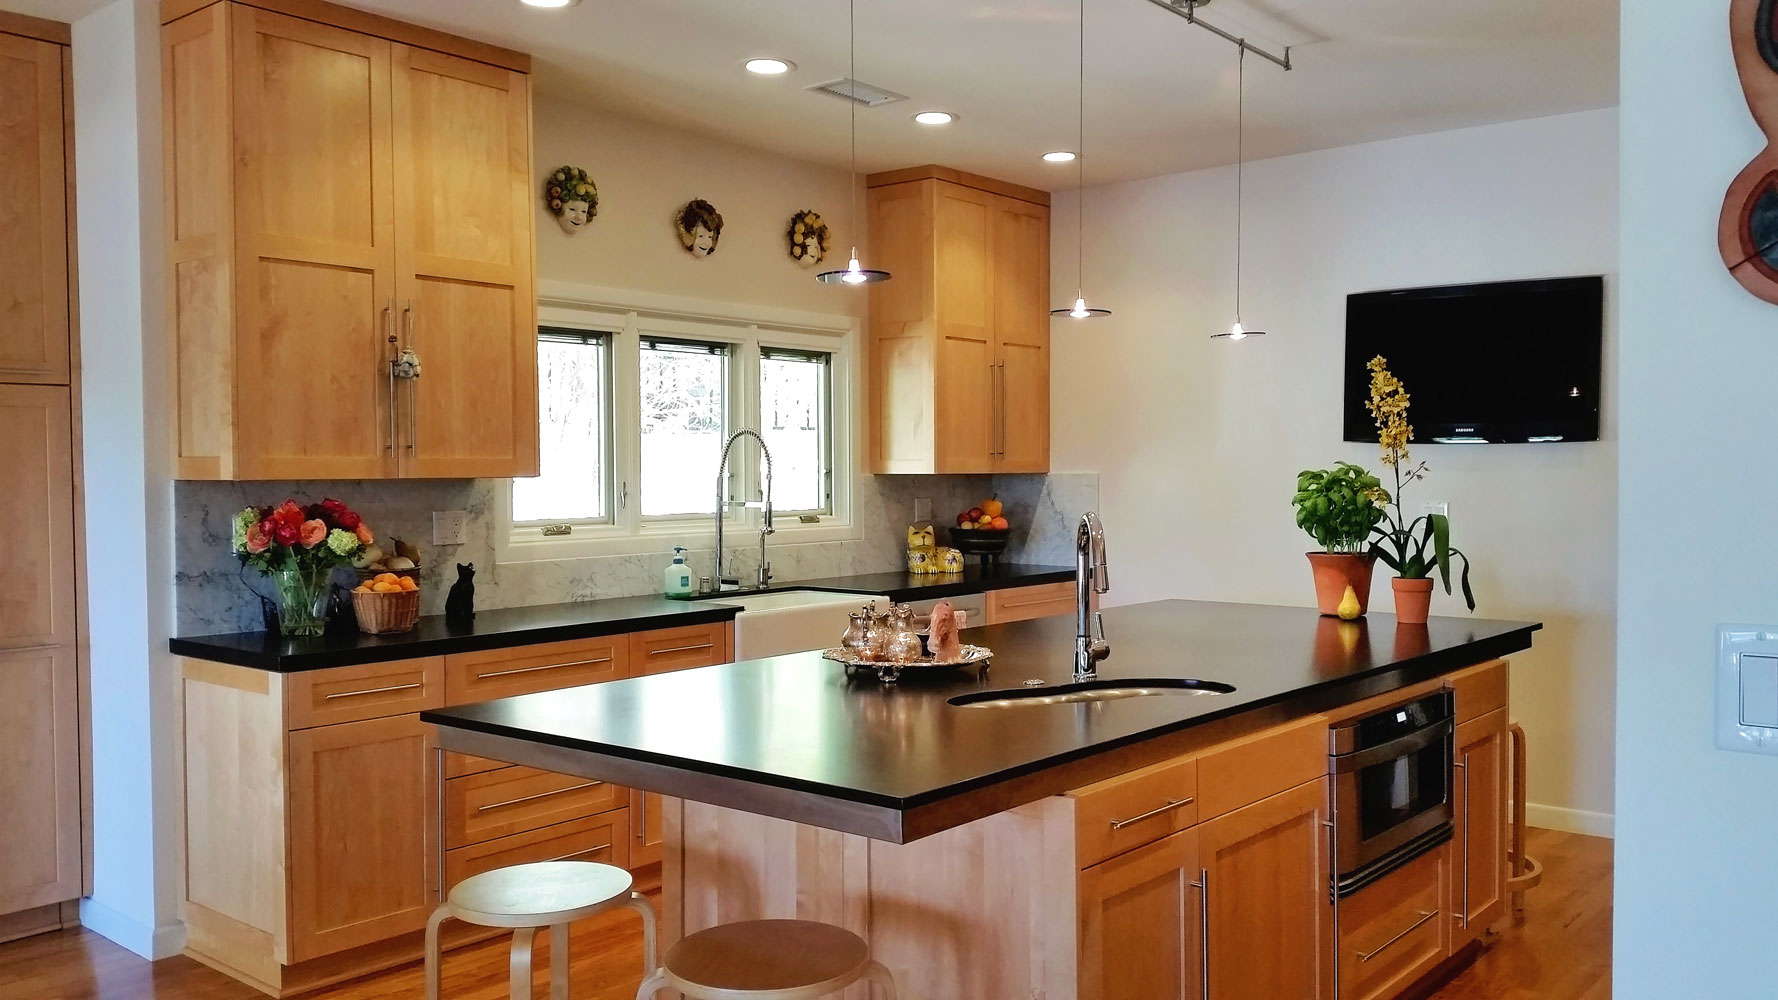 2-island-kitchen-recessed-lighting-wood-carawan-dee.jpg